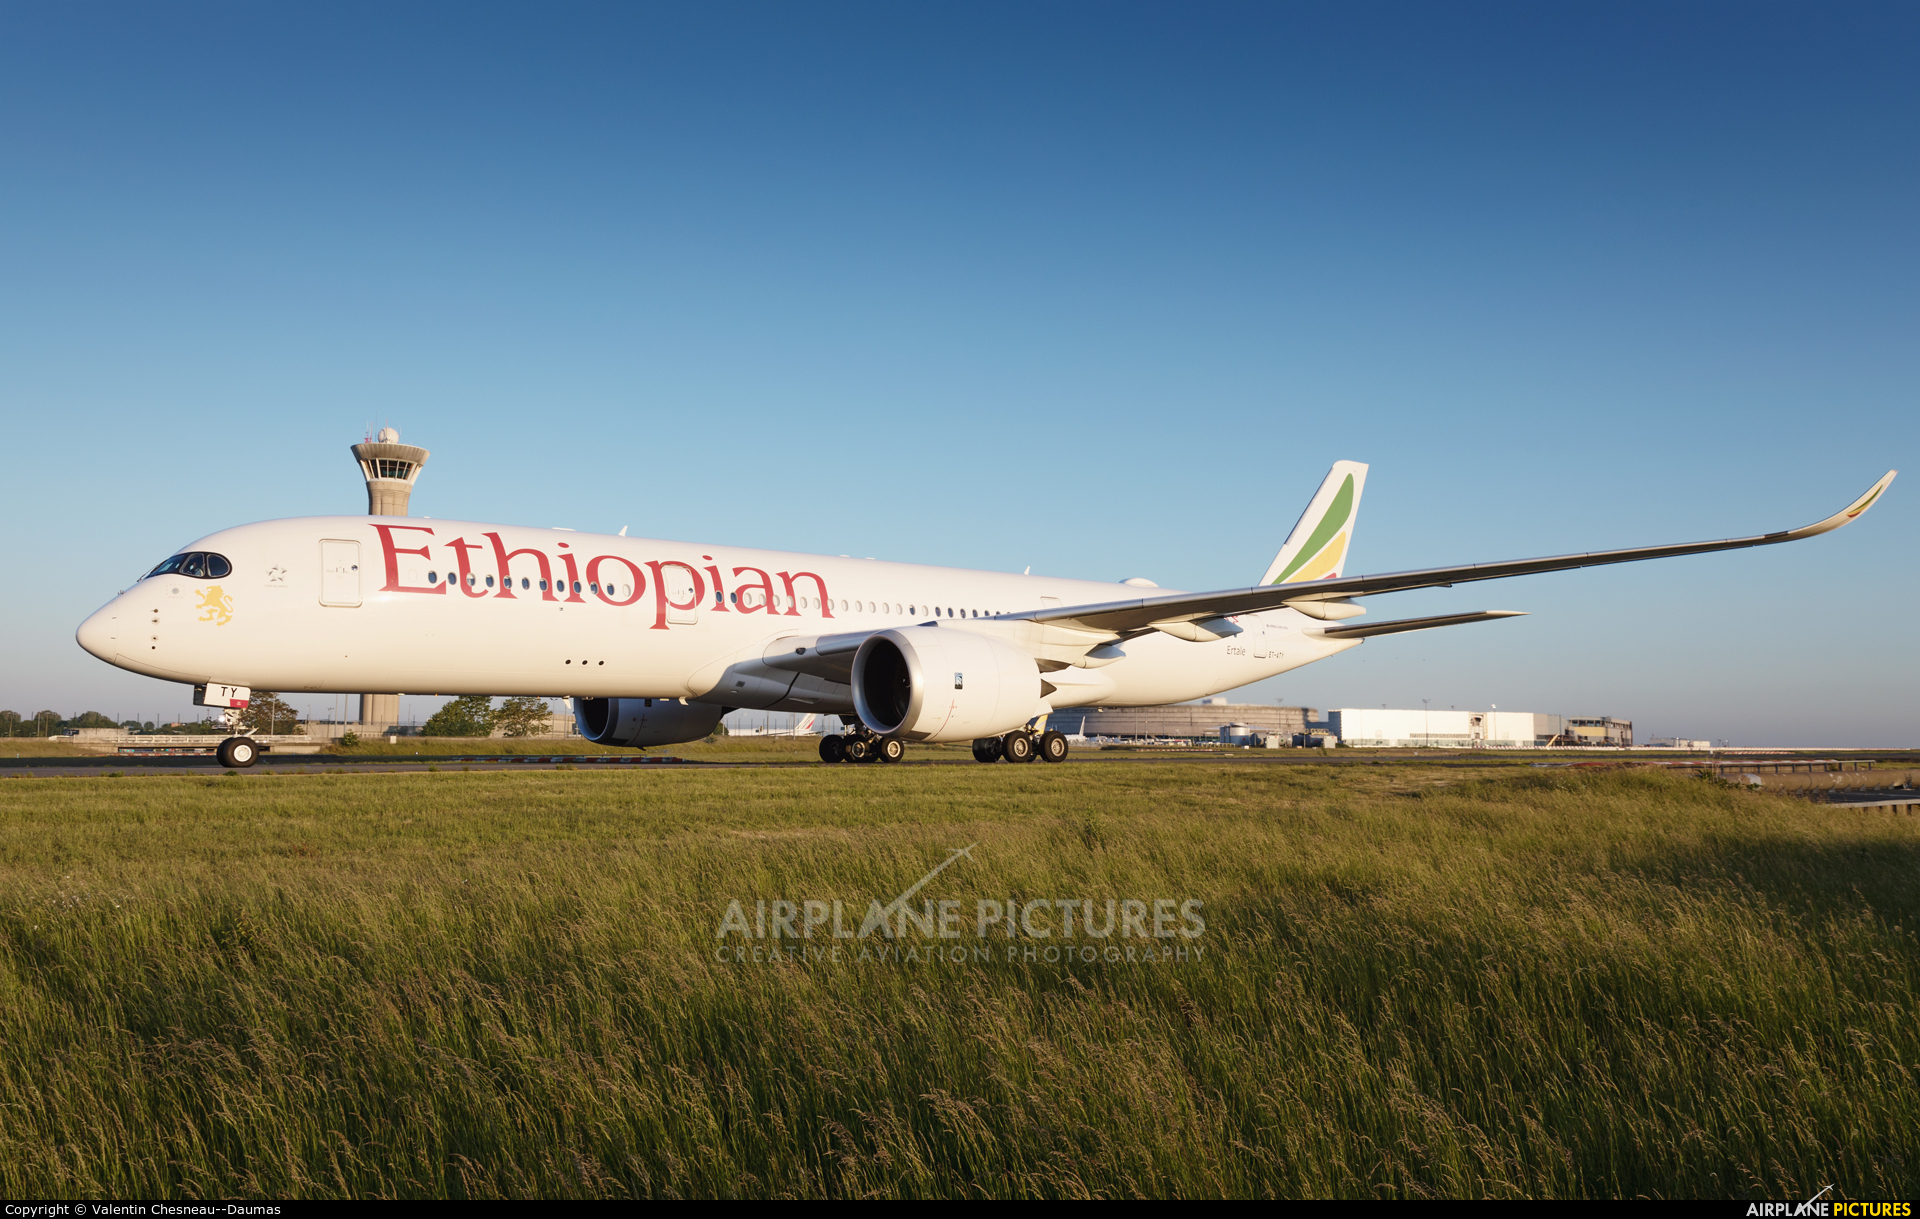 Ethiopian Airlines ET-ATY aircraft at Paris - Charles de Gaulle